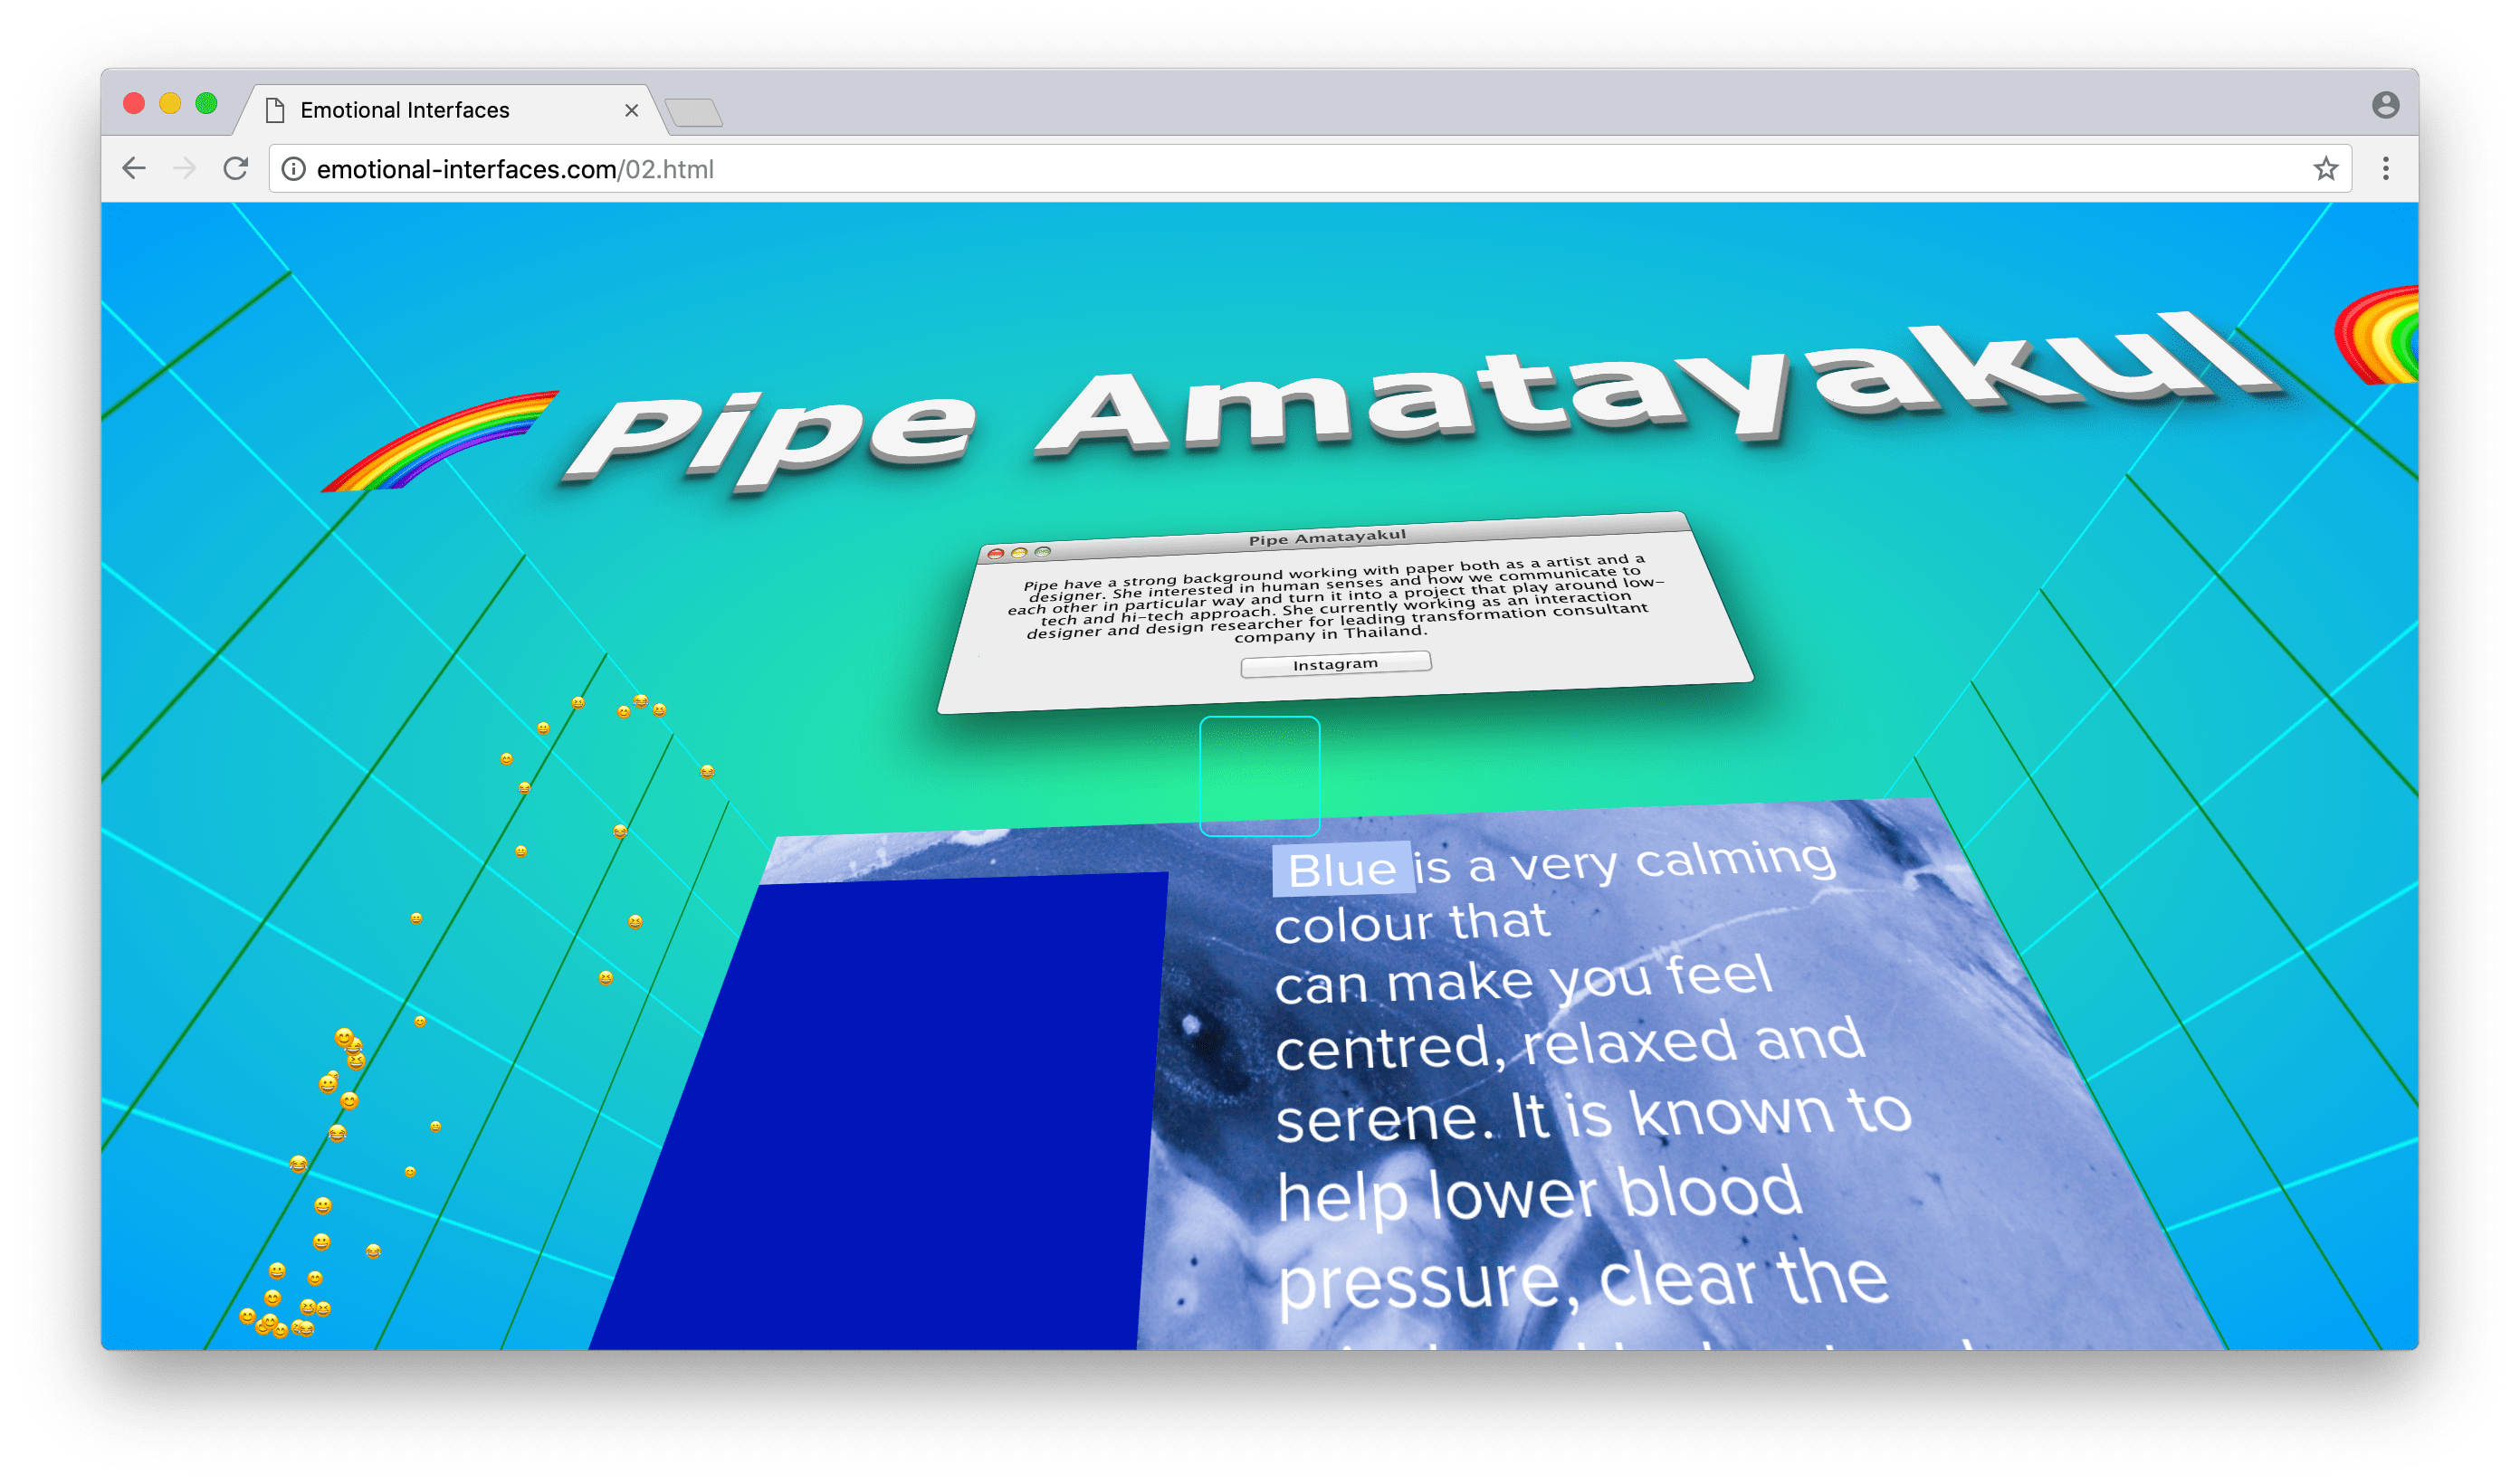 Pipe Amatayakul at Emotional Interfaces' online exhibition